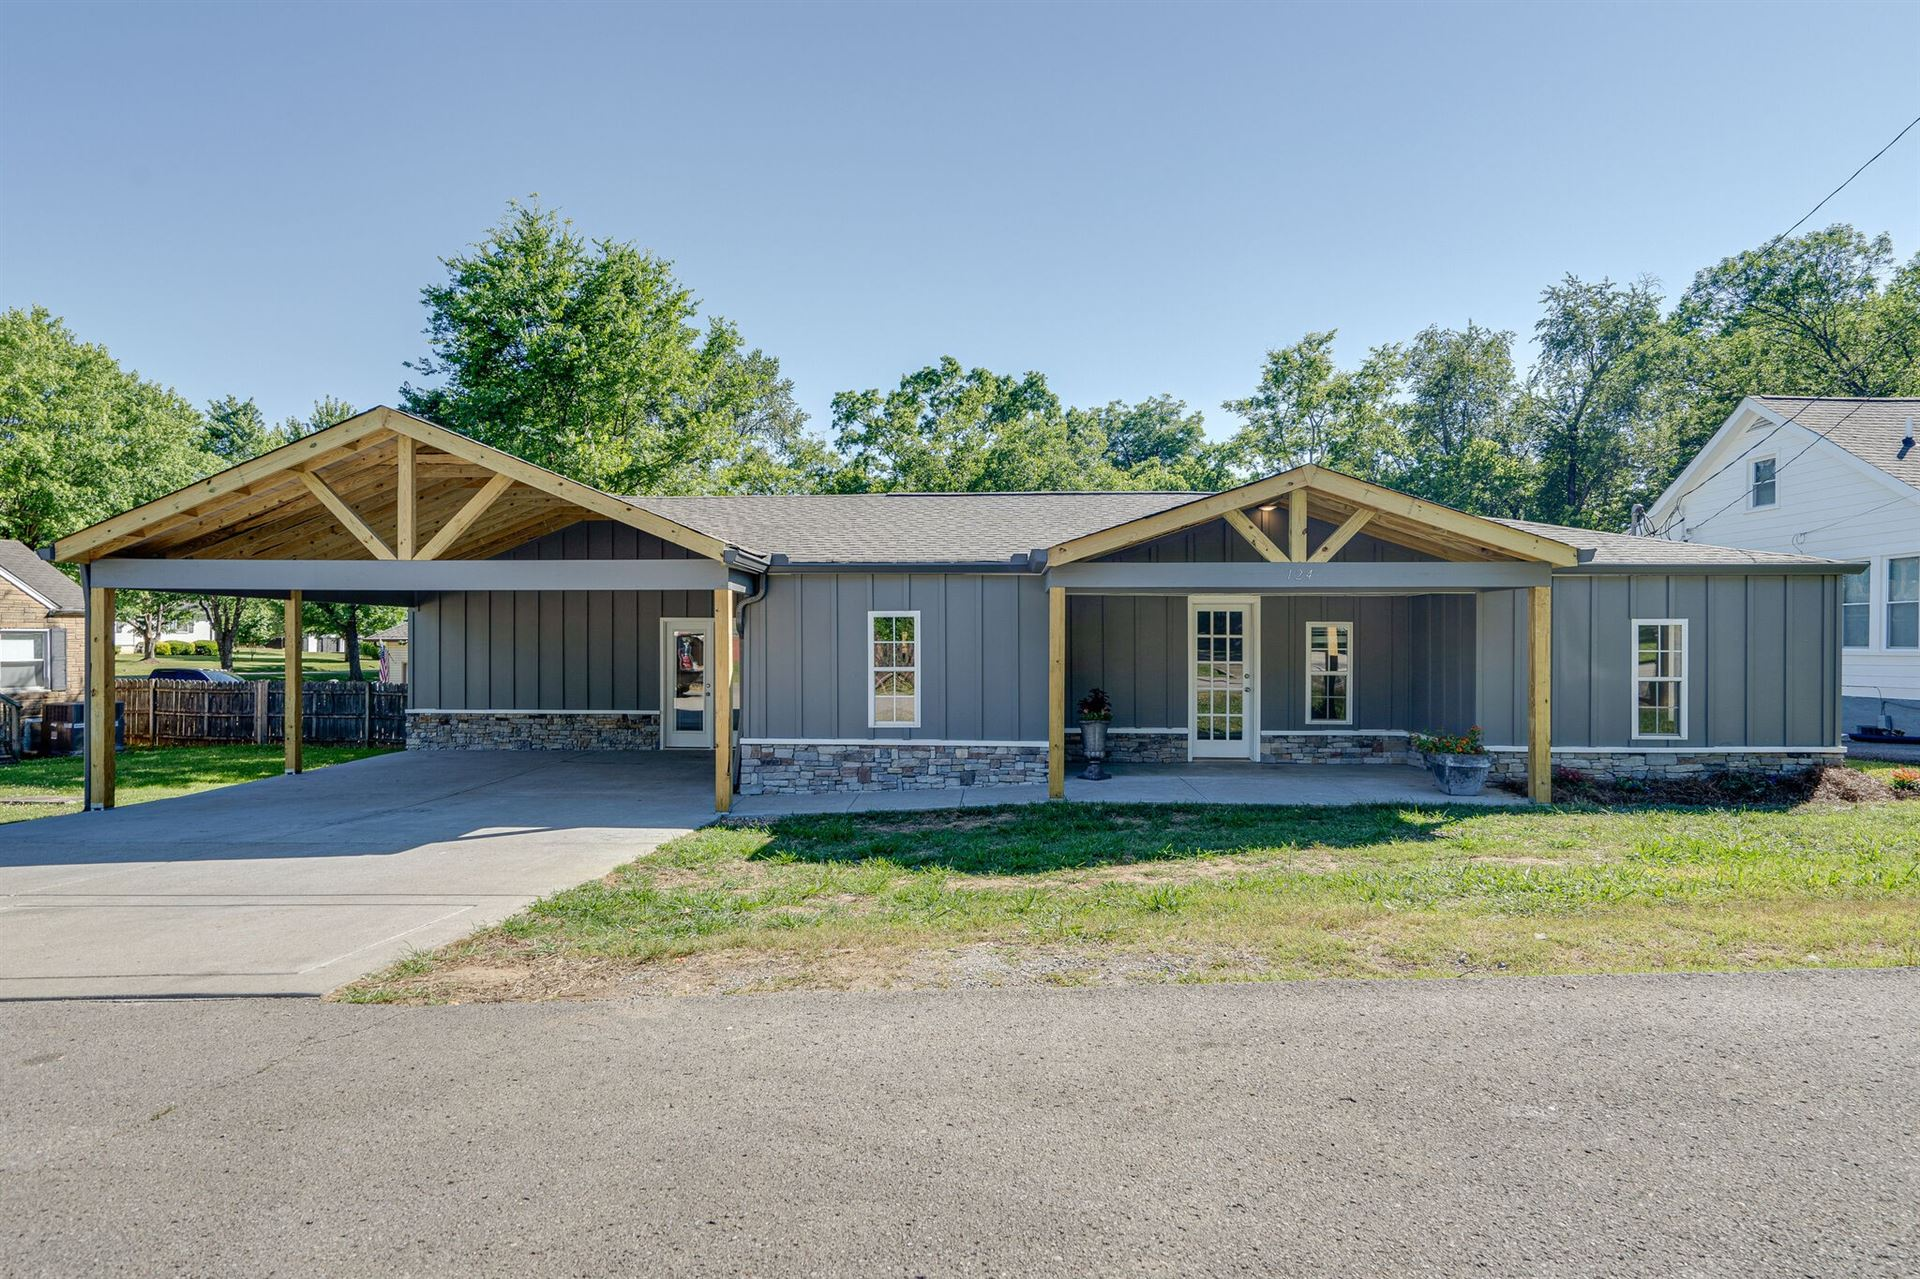 124 Becker Ave, Old Hickory, TN 37138 - MLS#: 2266151